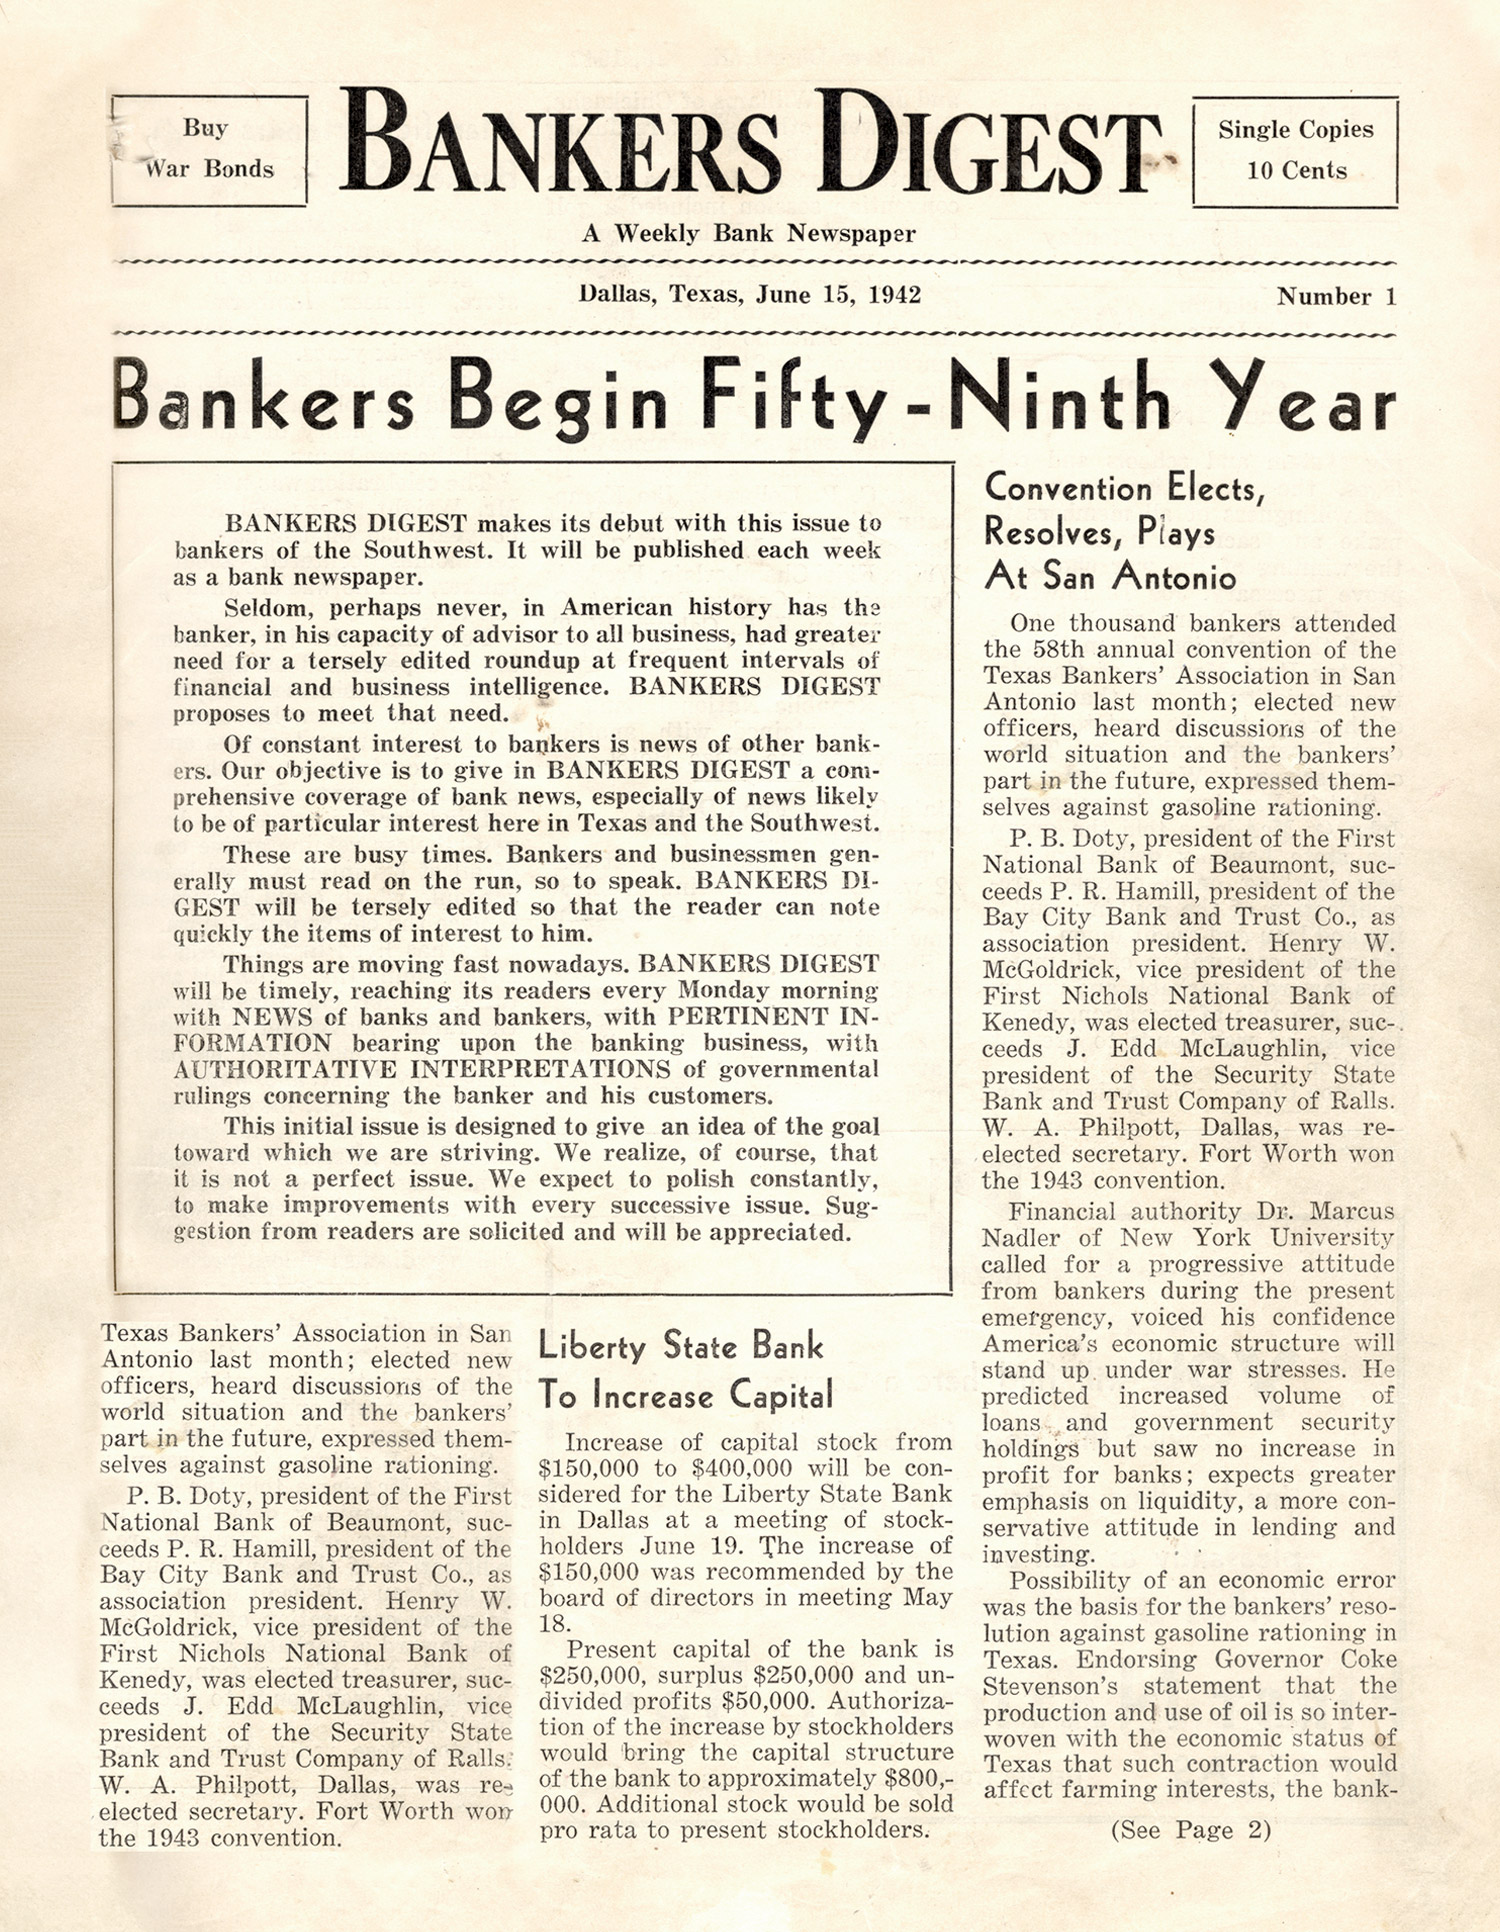 Bankers Digest Issue 1